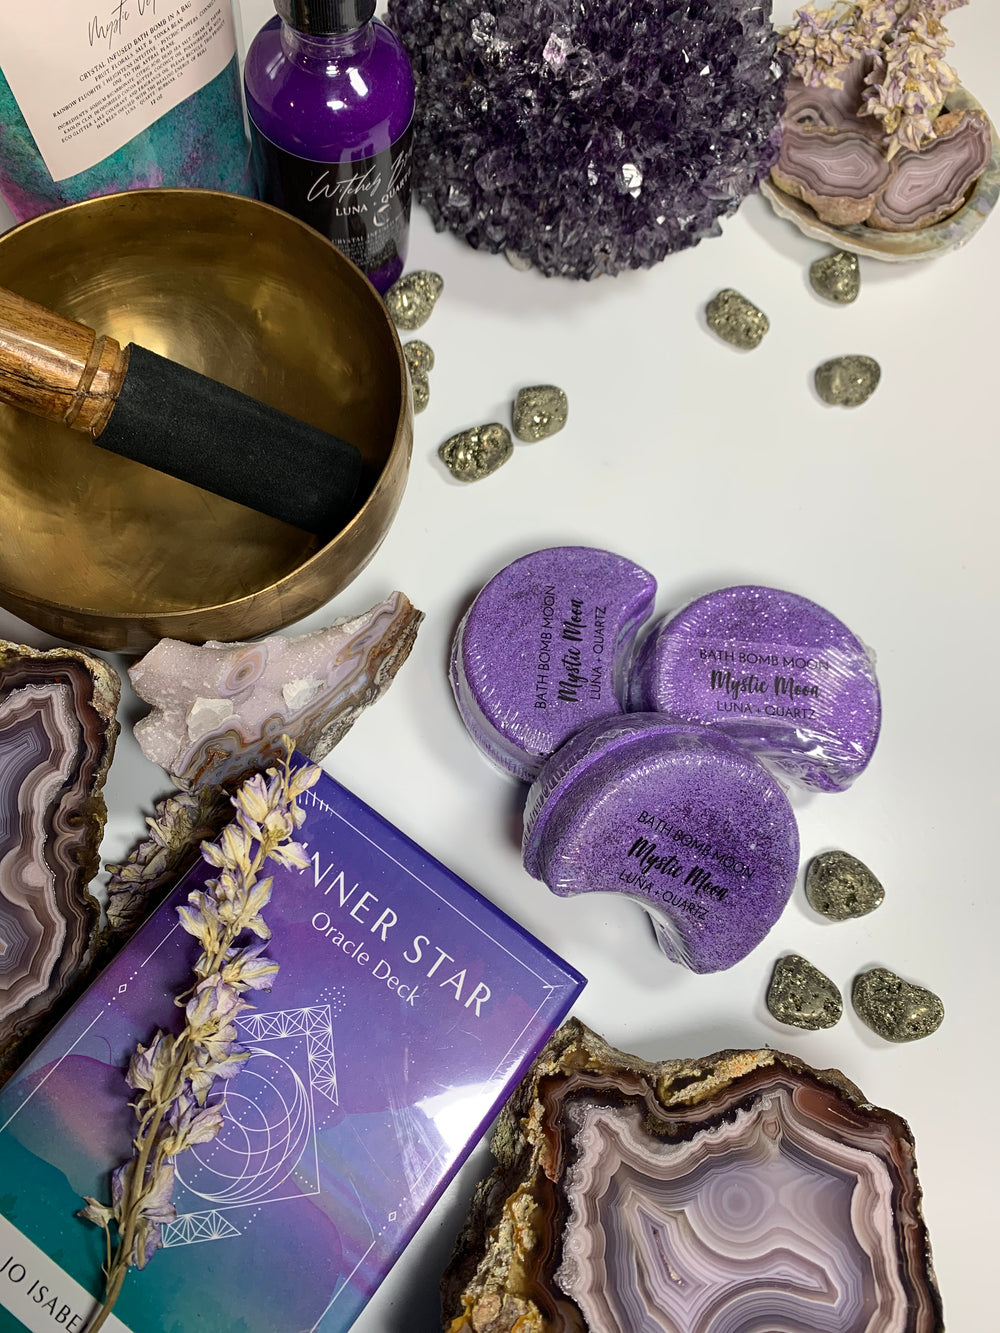 Inner Star Oracle with Laguna Agates, Amethyst Crystal Cluster, Brass singing bowls, and Luna and Quartz bath ritual goods from Mountain Hollow Crystals